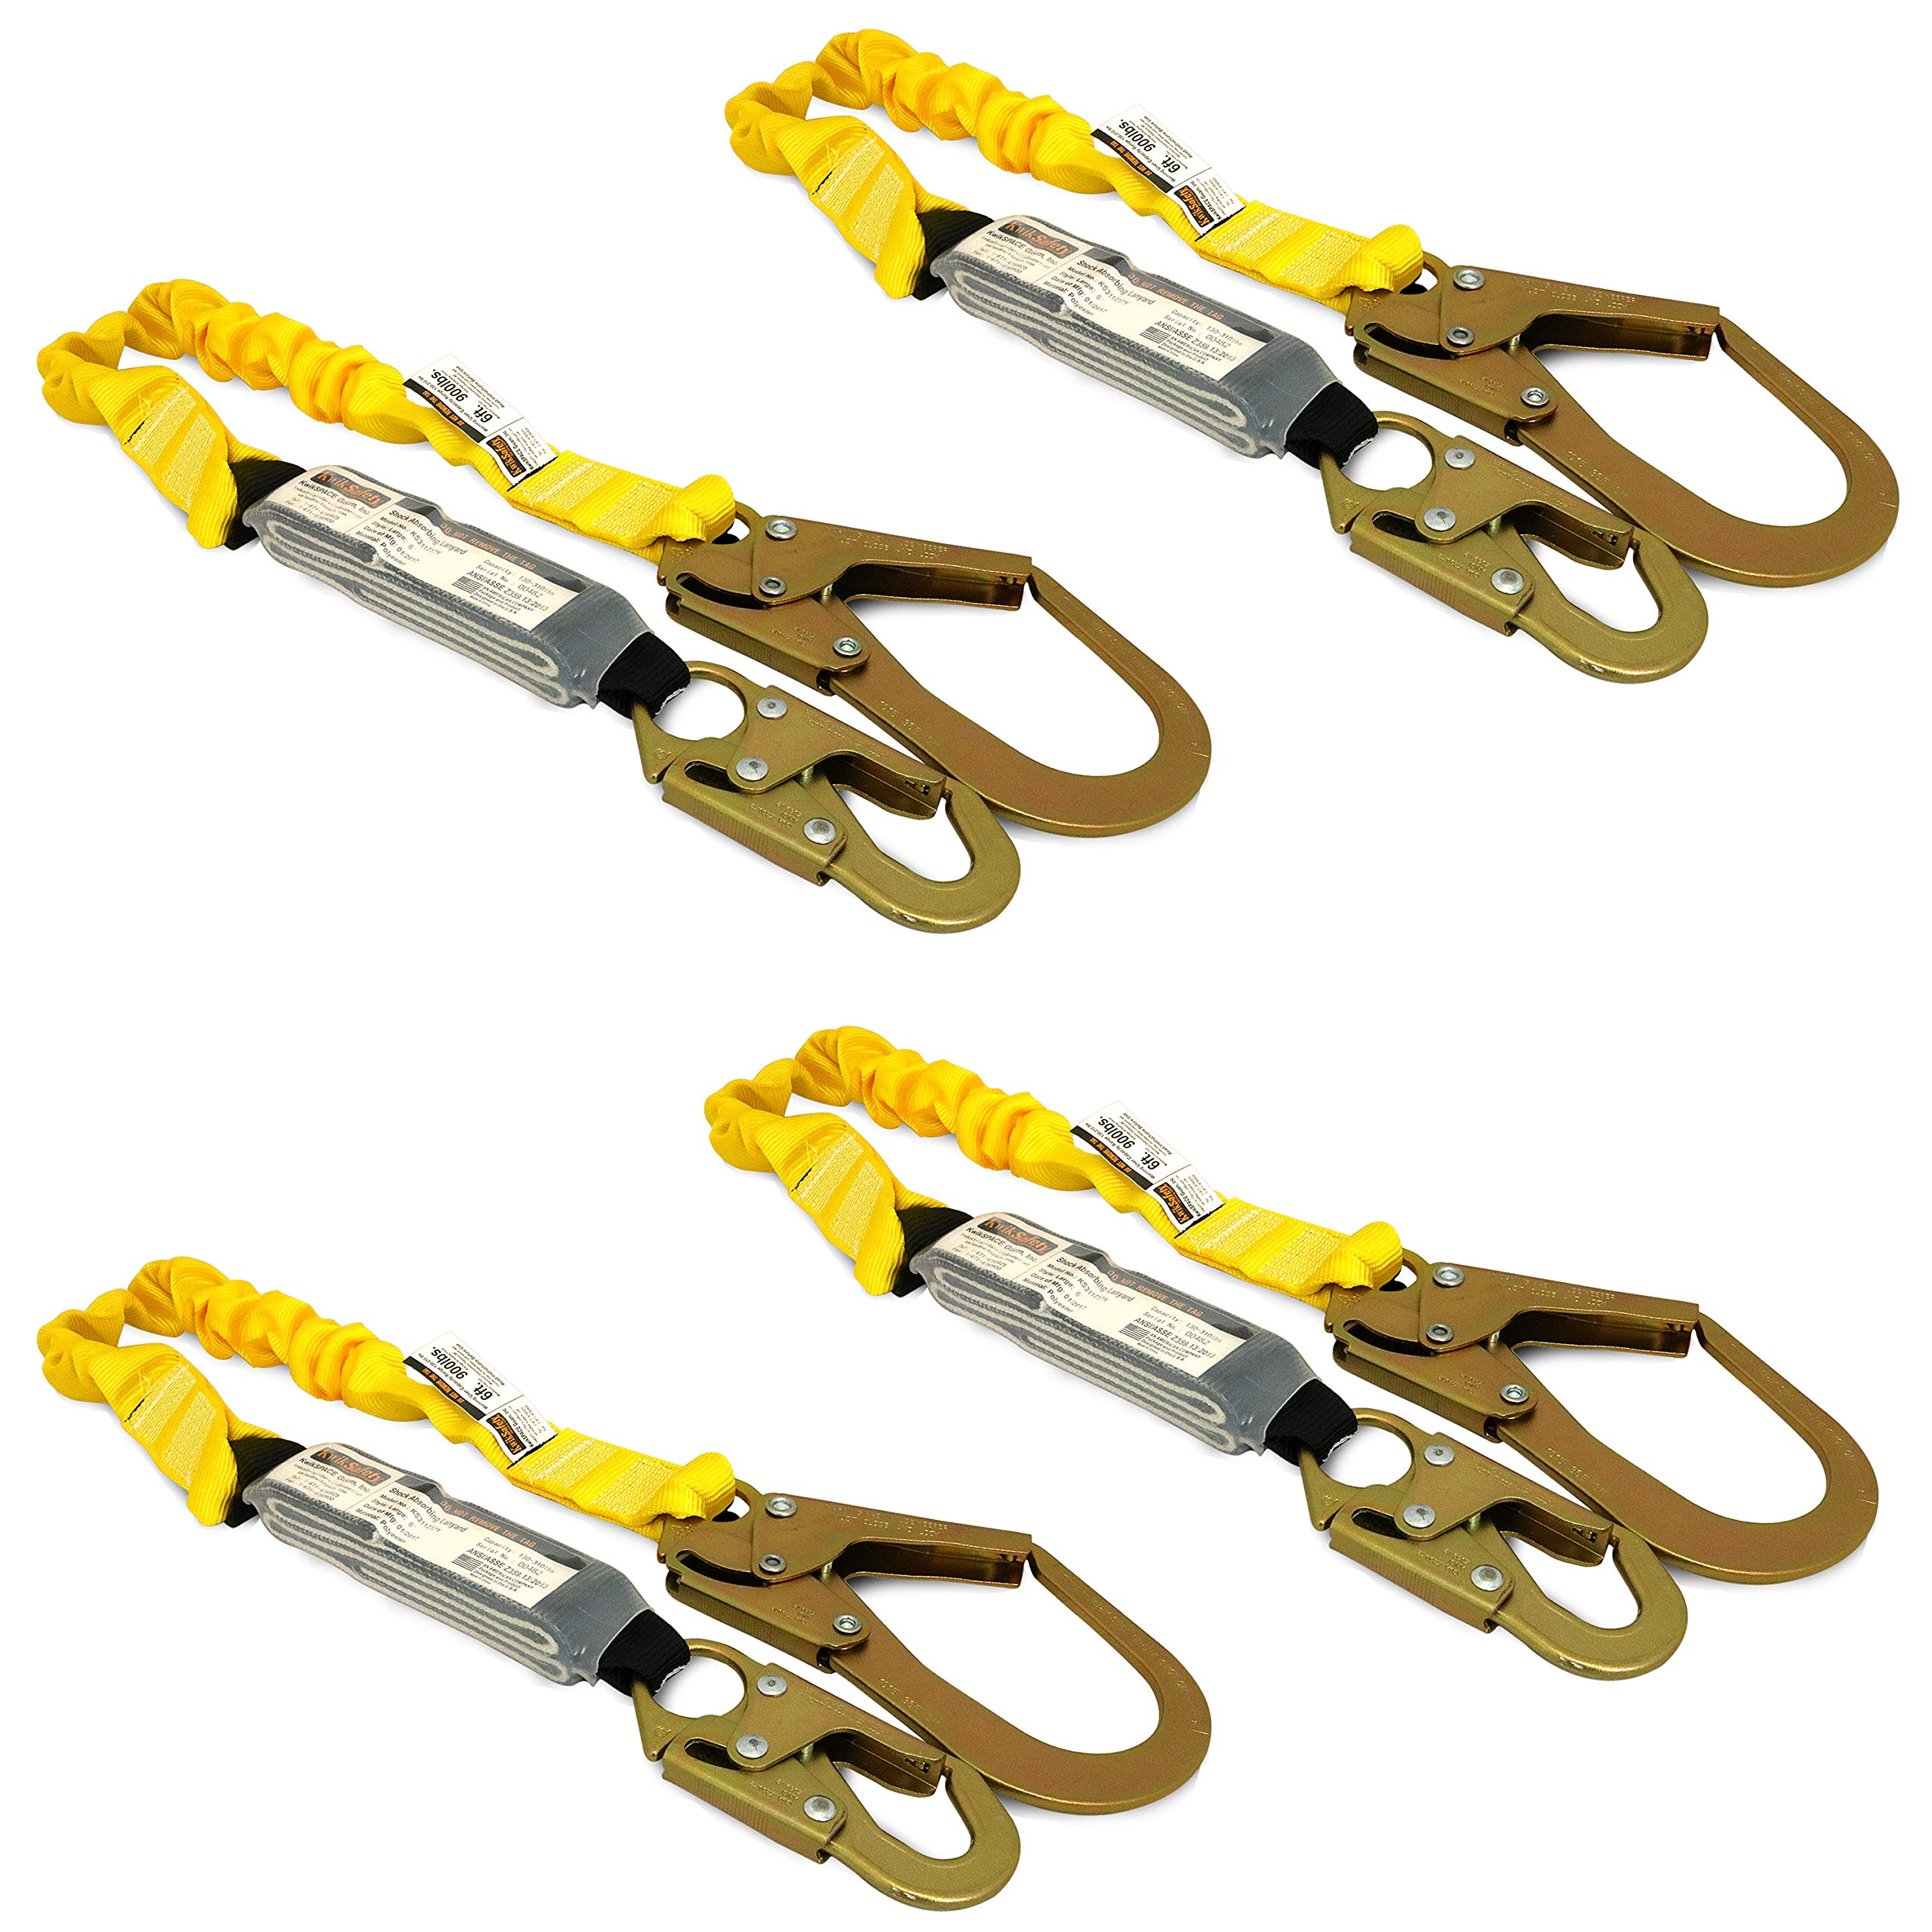 KwikSafety (Charlotte, NC) BOA 4 PACK (External Shock Absorber) Single Leg 6ft Safety Lanyard OSHA ANSI Fall Protection Restraint Equipment Snap Rebar Hook Connectors Construction Arborist Roofing by KwikSafety (Image #1)